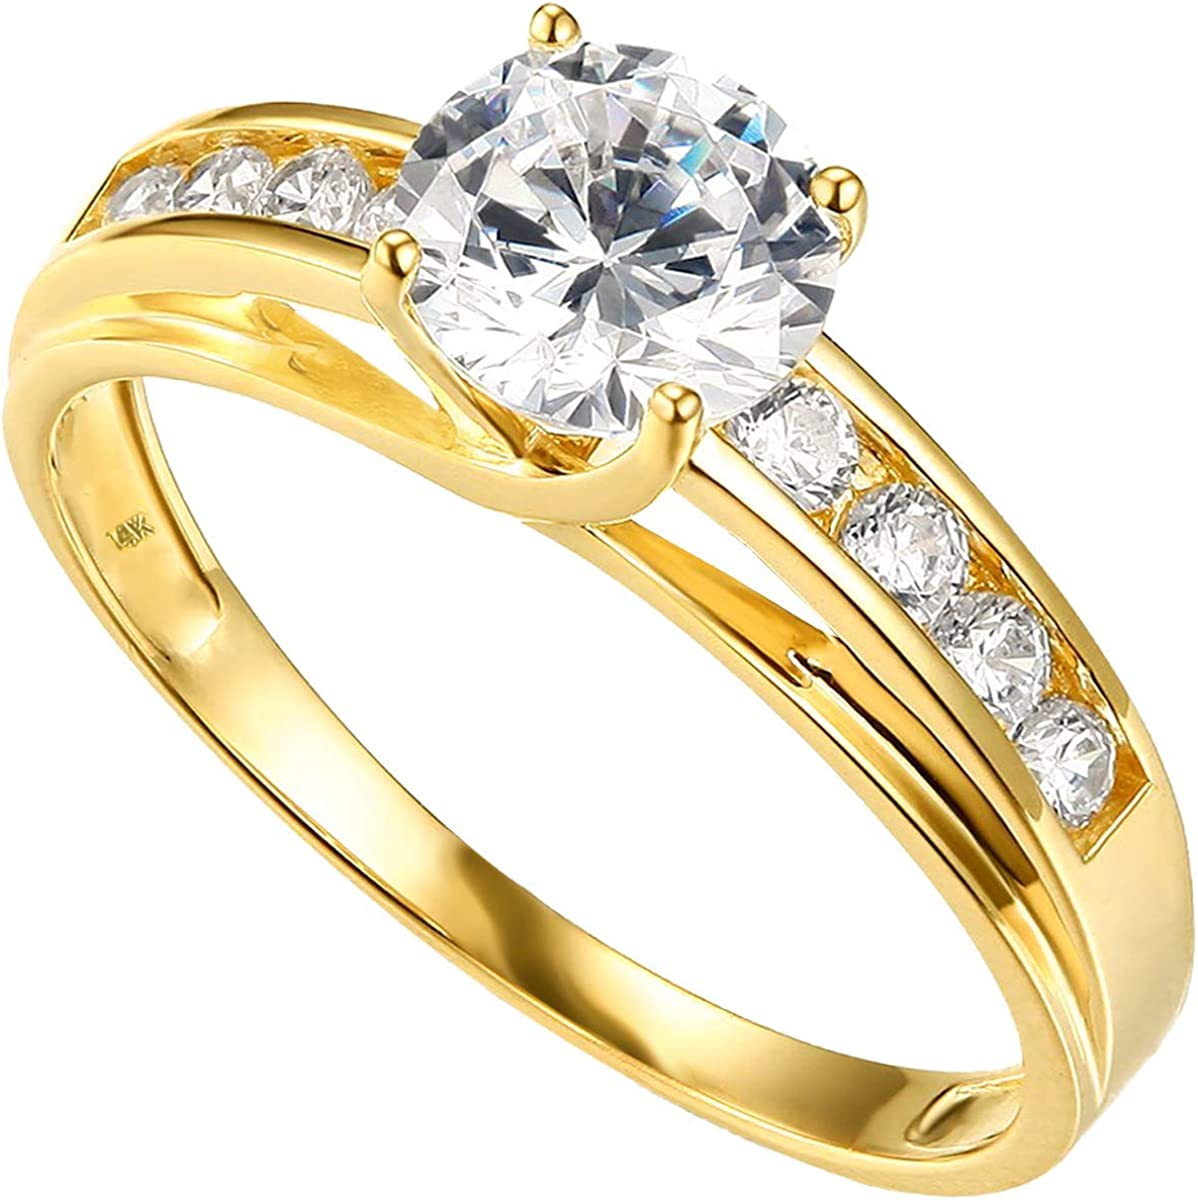 14k or 10k Yellow OR White Gold Solid Wedding Engagement Ring- Rings for Women Gold-Thick Gold Ring - 14K Solid Yellow or White Gold proposal female